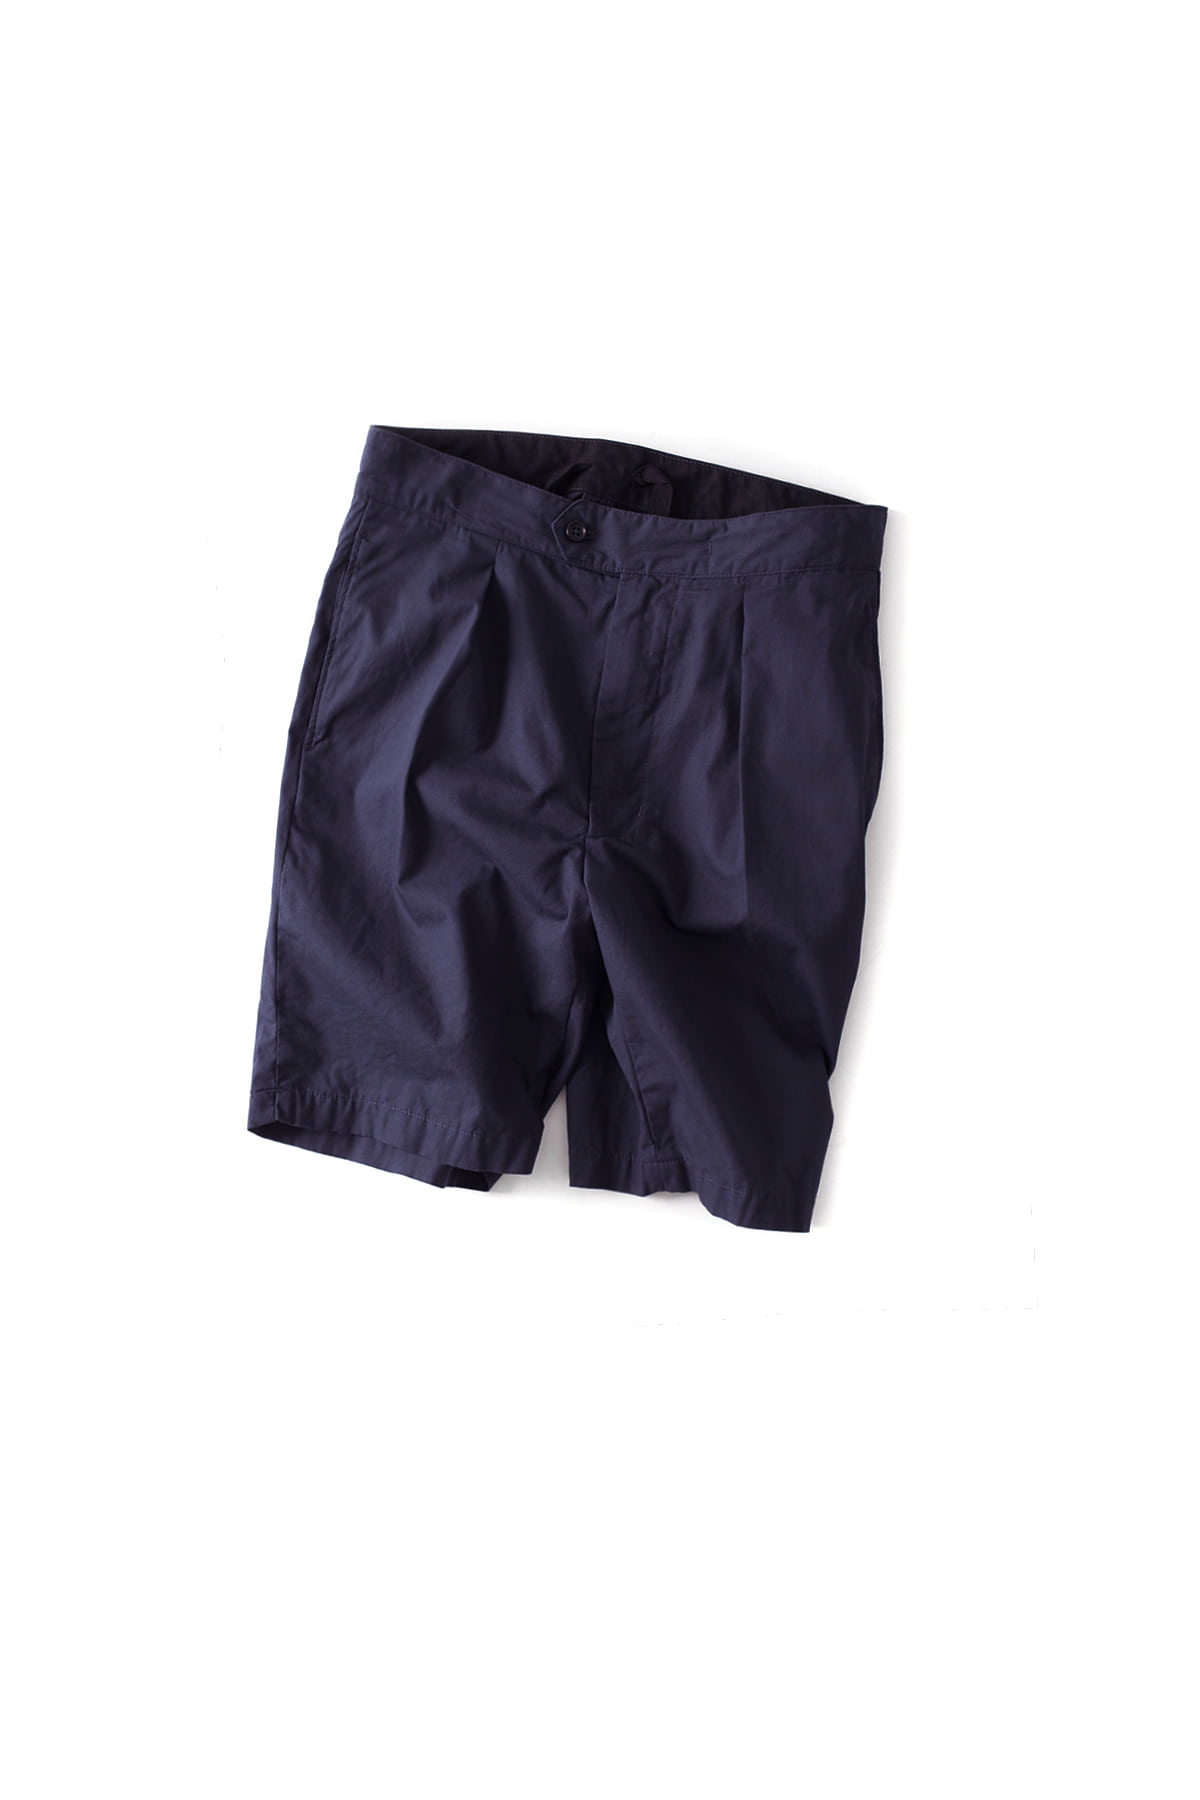 Engineered Garments : Sunset Short (DK.Navy Maibu Poplin)